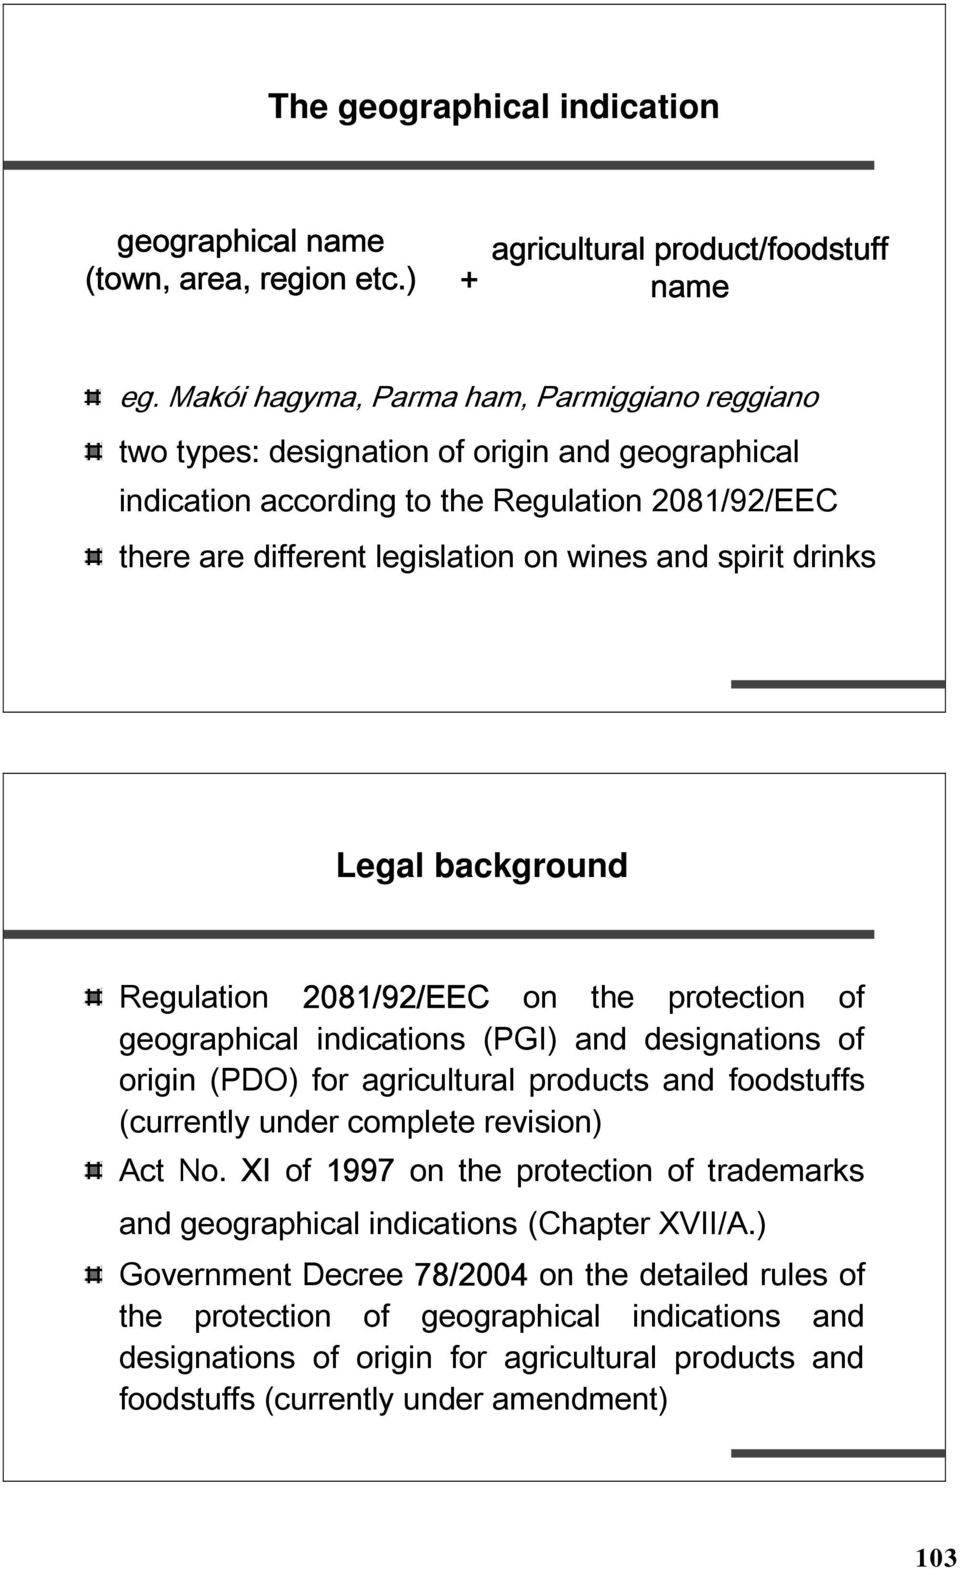 drinks Legal background Regulation 2081/92/EEC on the protection of geographical indications (PGI) and designations of origin (PDO) for agricultural products and foodstuffs (currently under complete